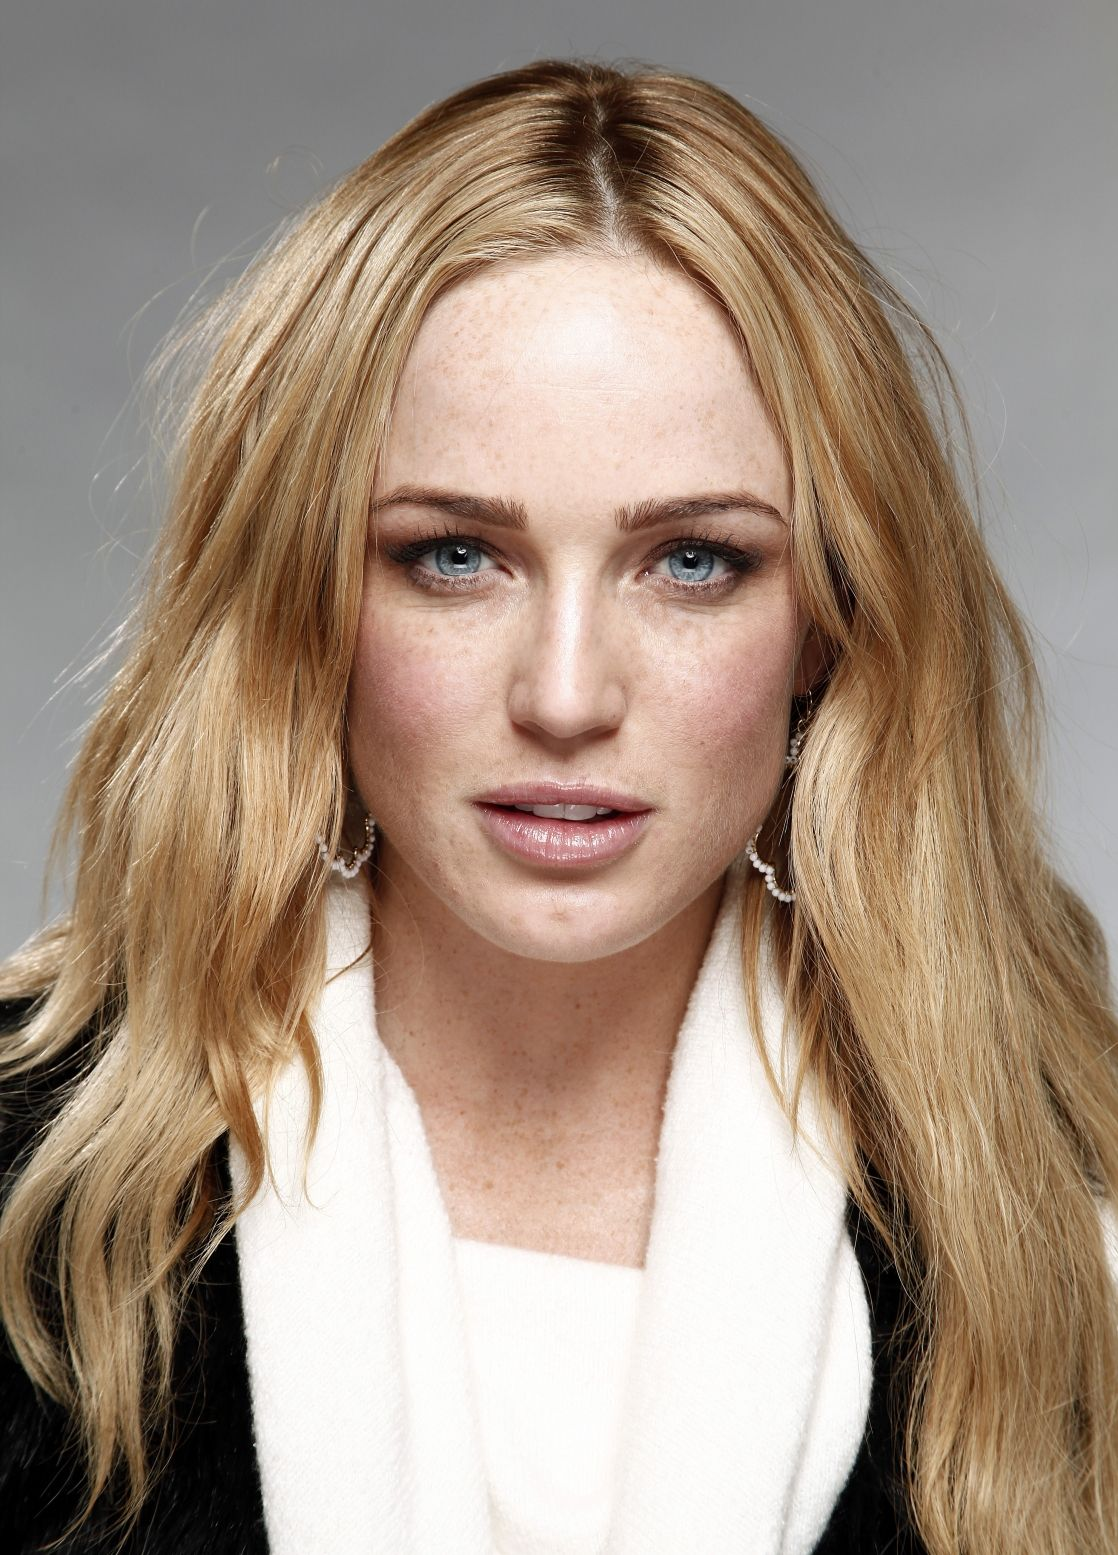 caity lotz фотоcaity lotz gif, caity lotz instagram, caity lotz фото, caity lotz vk, caity lotz википедия, caity lotz twitter, caity lotz arrow, caity lotz imdb, caity lotz the machine, caity lotz png, caity lotz site, caity lotz gif tumblr, caity lotz and katie cassidy, caity lotz gallery, caity lotz fan site, caity lotz website, caity lotz survive, caity lotz interview, caity lotz news, caity lotz films